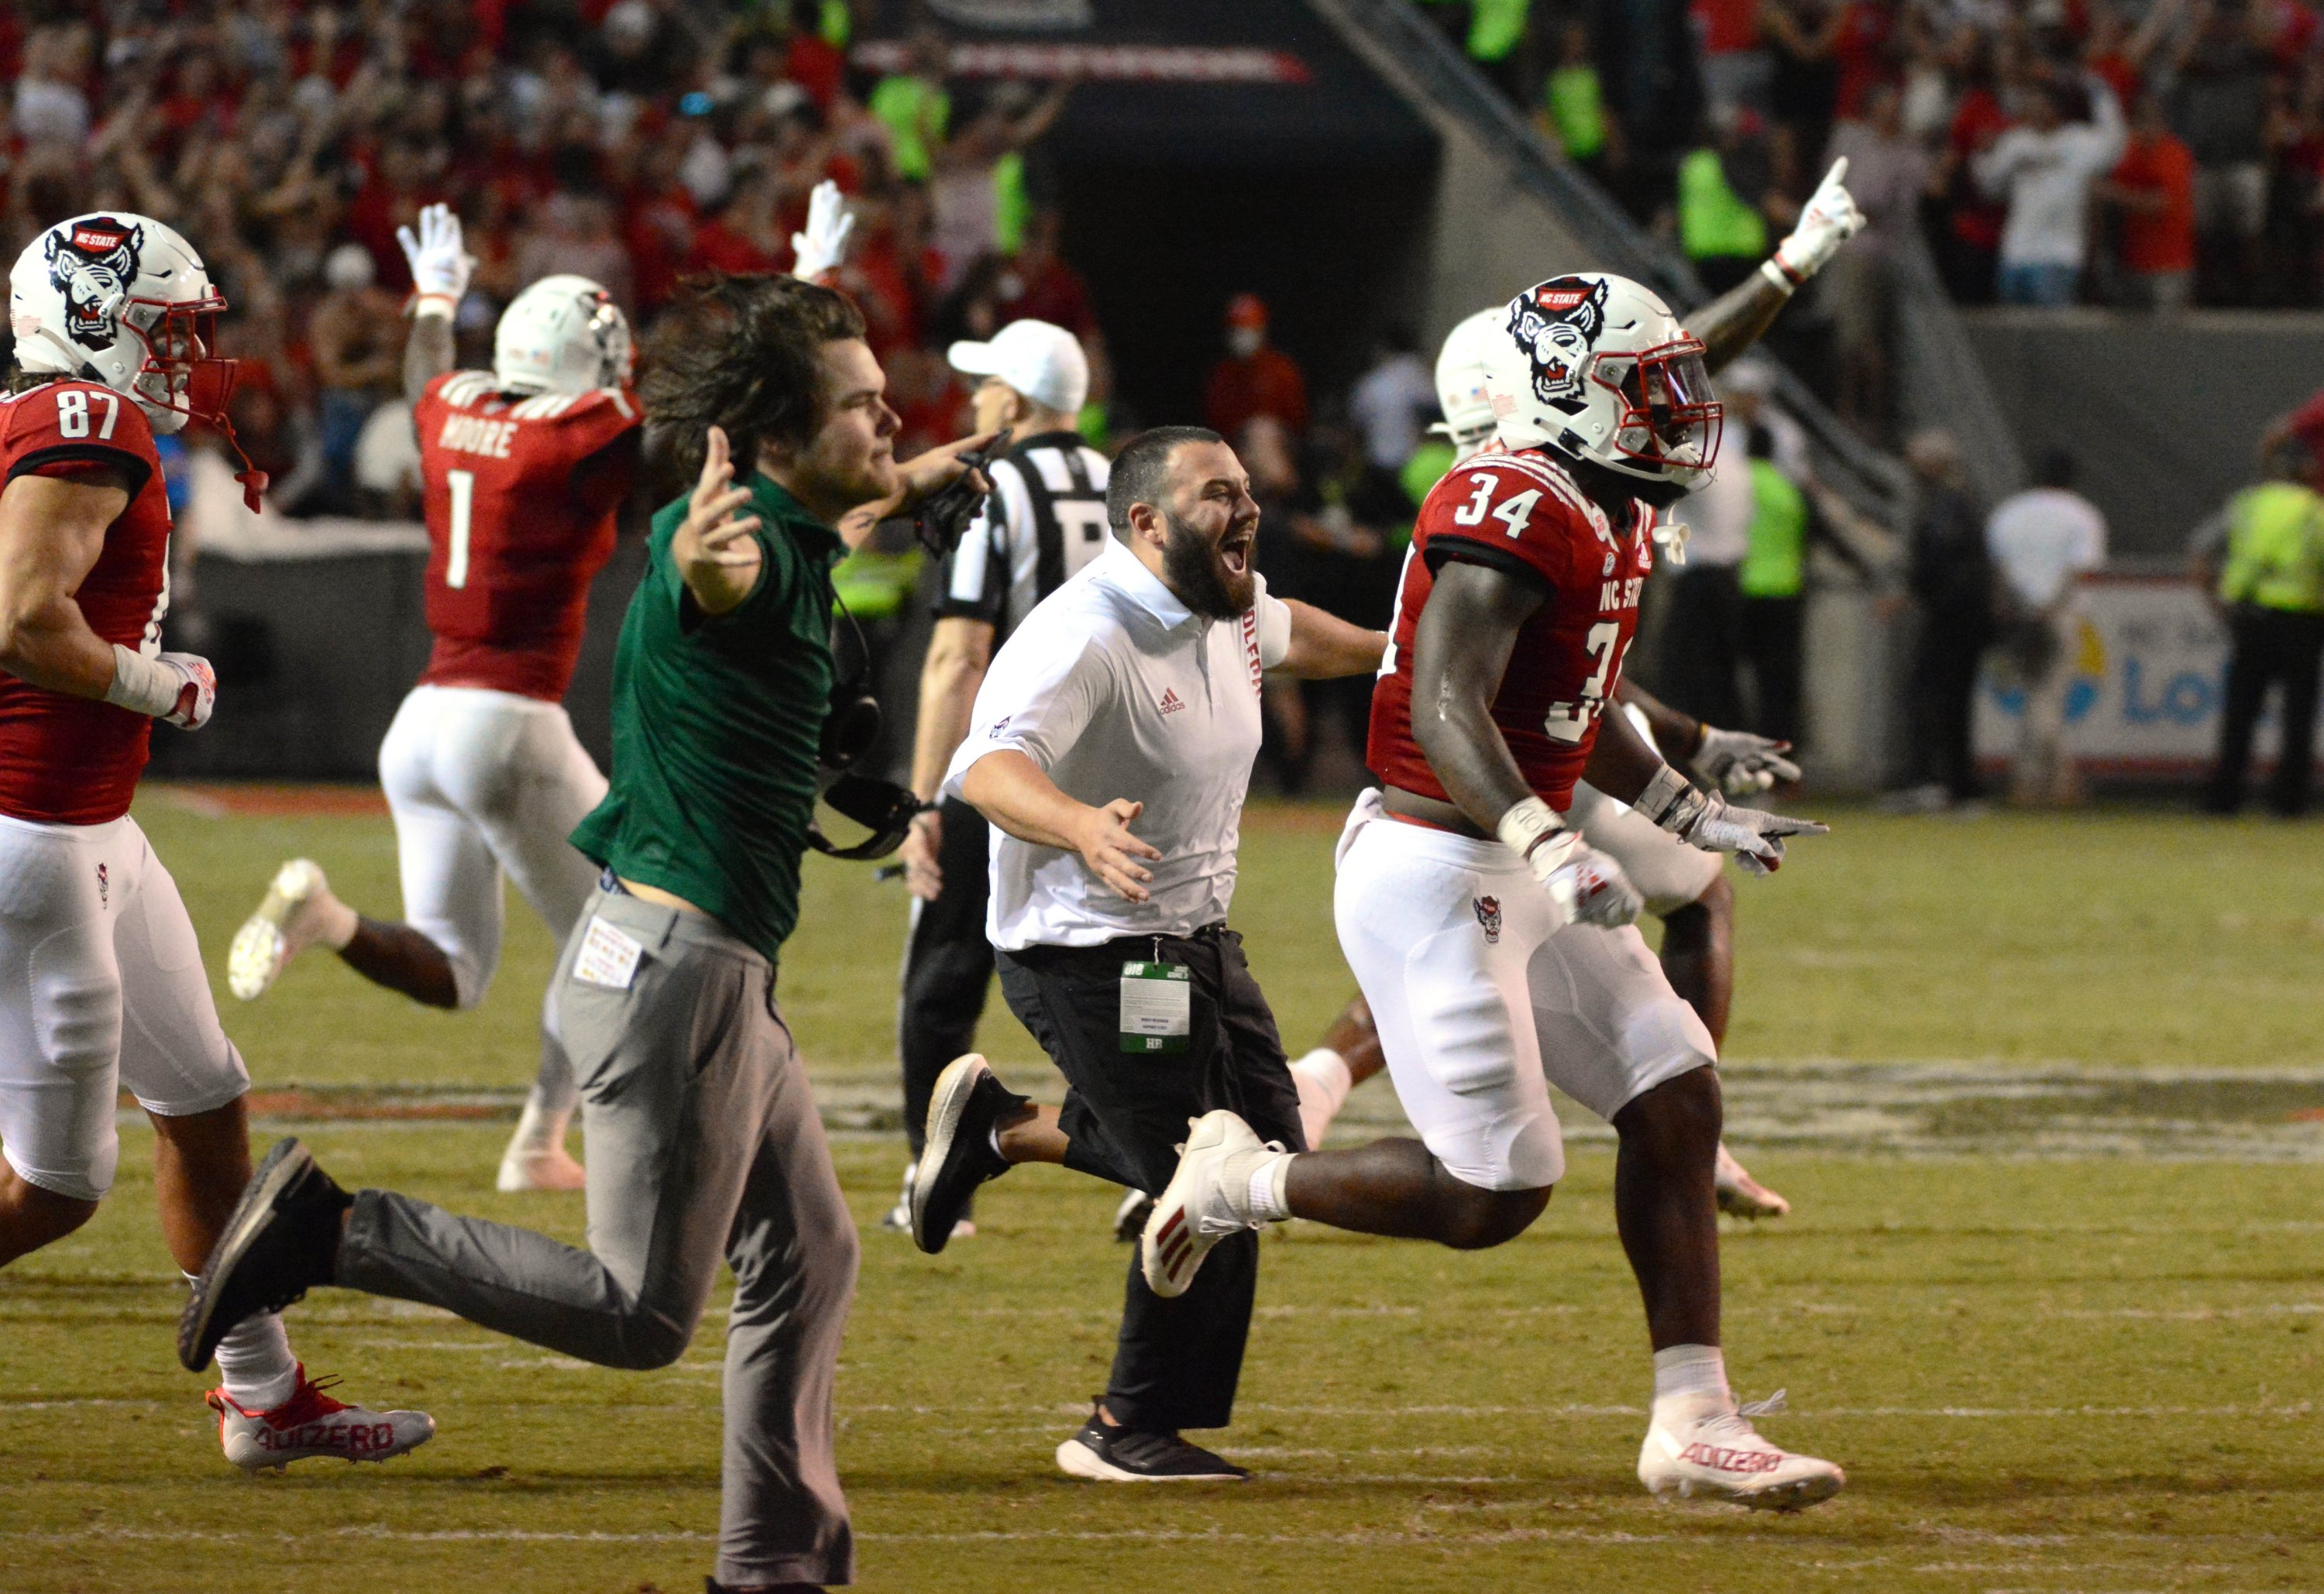 North Carolina State Wolfpack players and coaches celebrate after beating the Clemson Tigers in two overtimes at Carter-Finley Stadium, Raleigh, North Carolina, U.S., Sept. 25, 2021. (Rob Kinnan-USA TODAY Sports via Reuters)